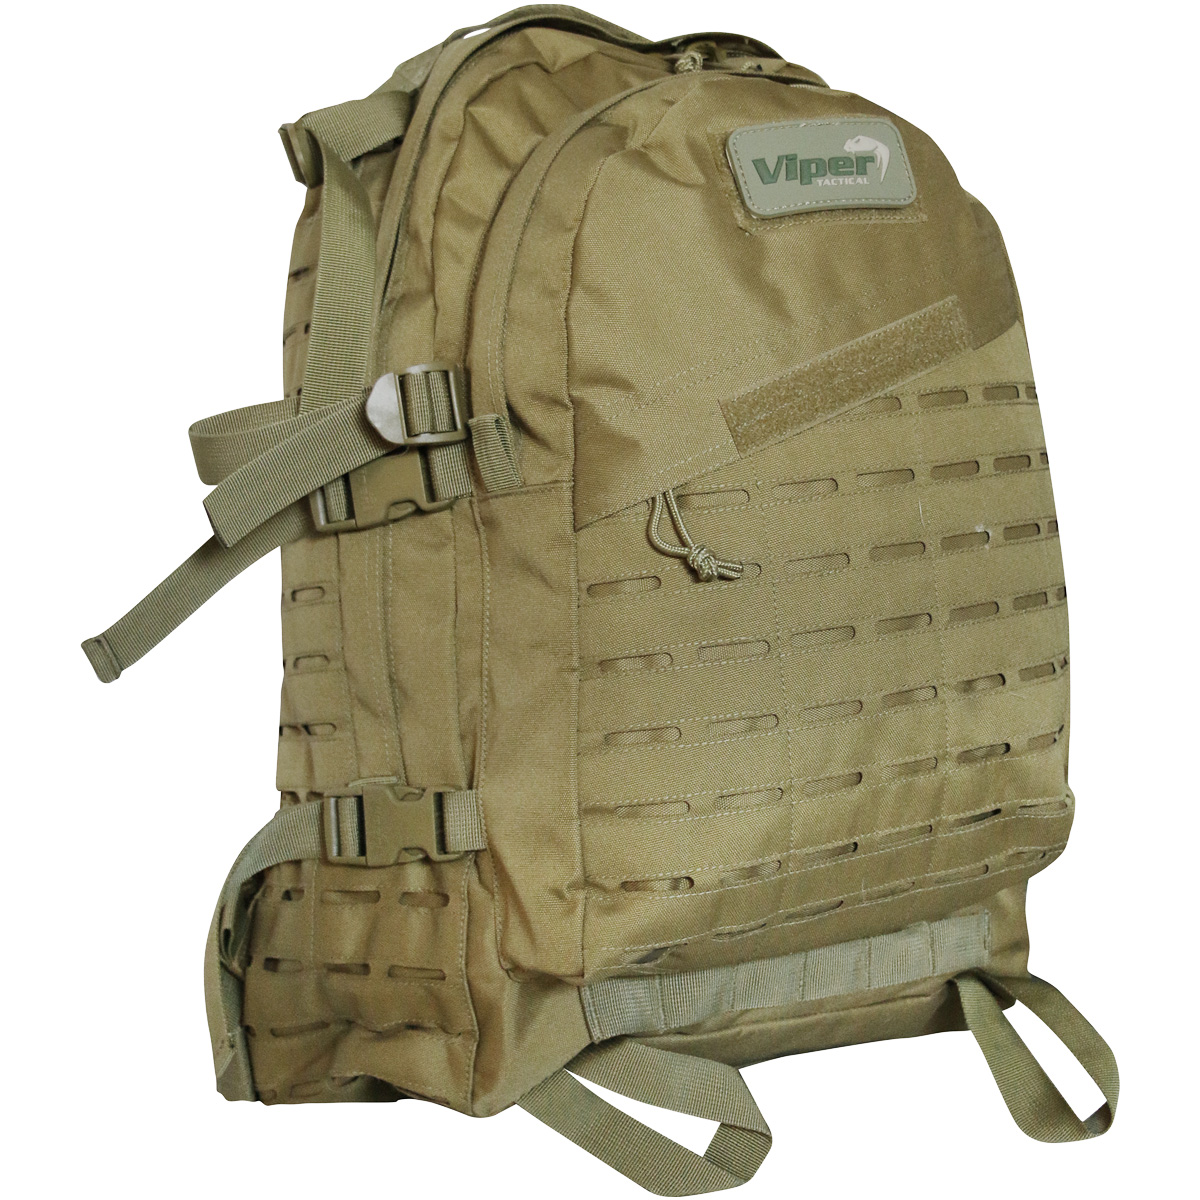 Sentinel Viper Special Ops Military Molle Backpack 45l Army Bag Combat Rucksack Coyote